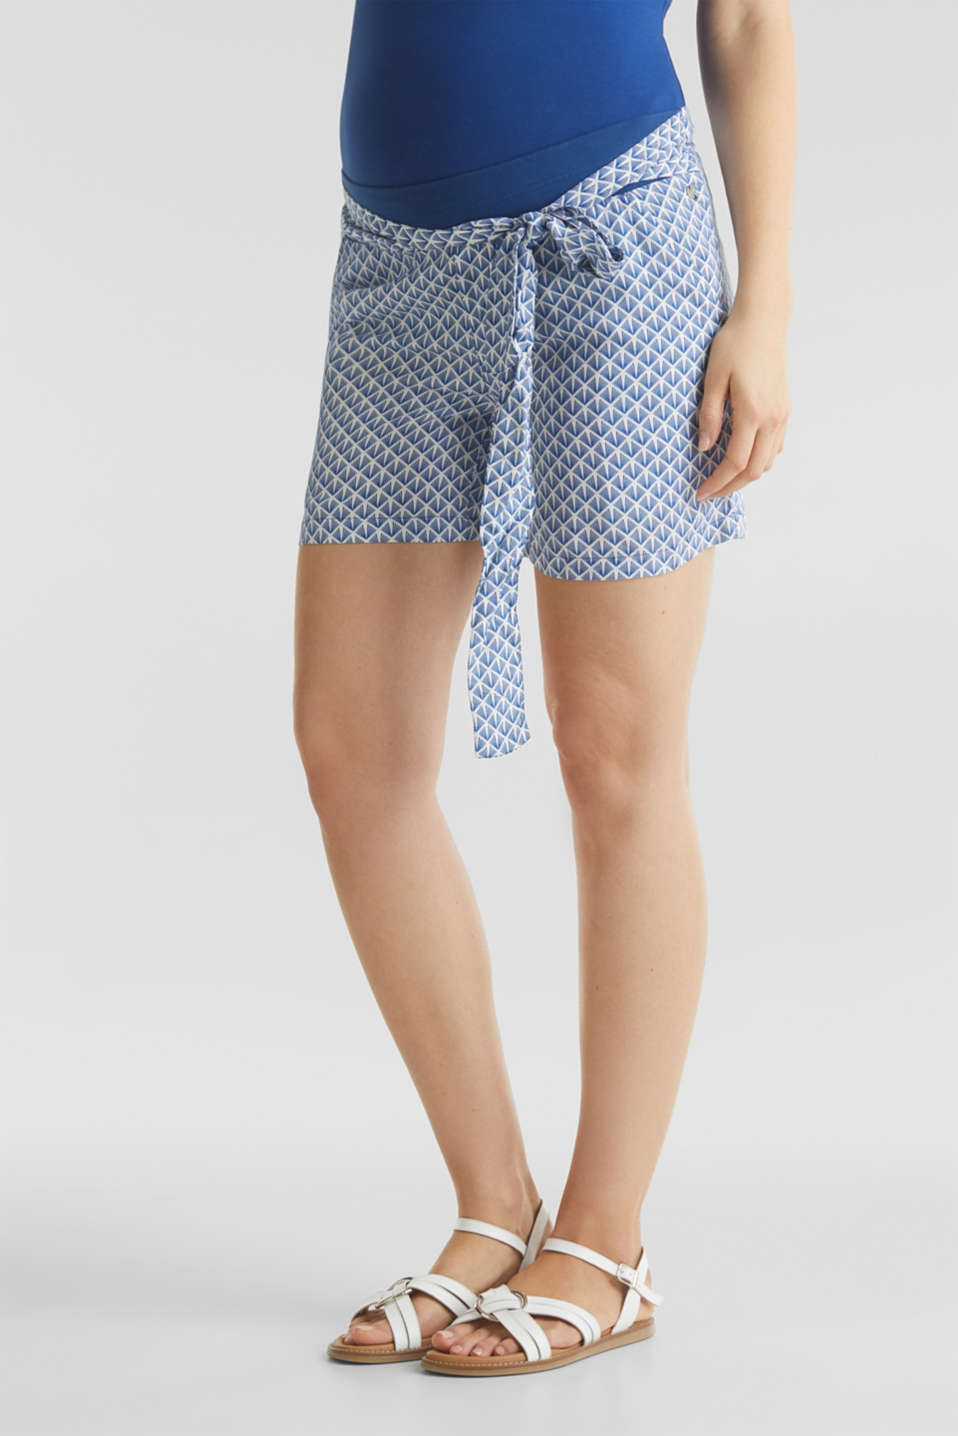 Woven shorts with an under-bump waistband, LCGREY BLUE, detail image number 6